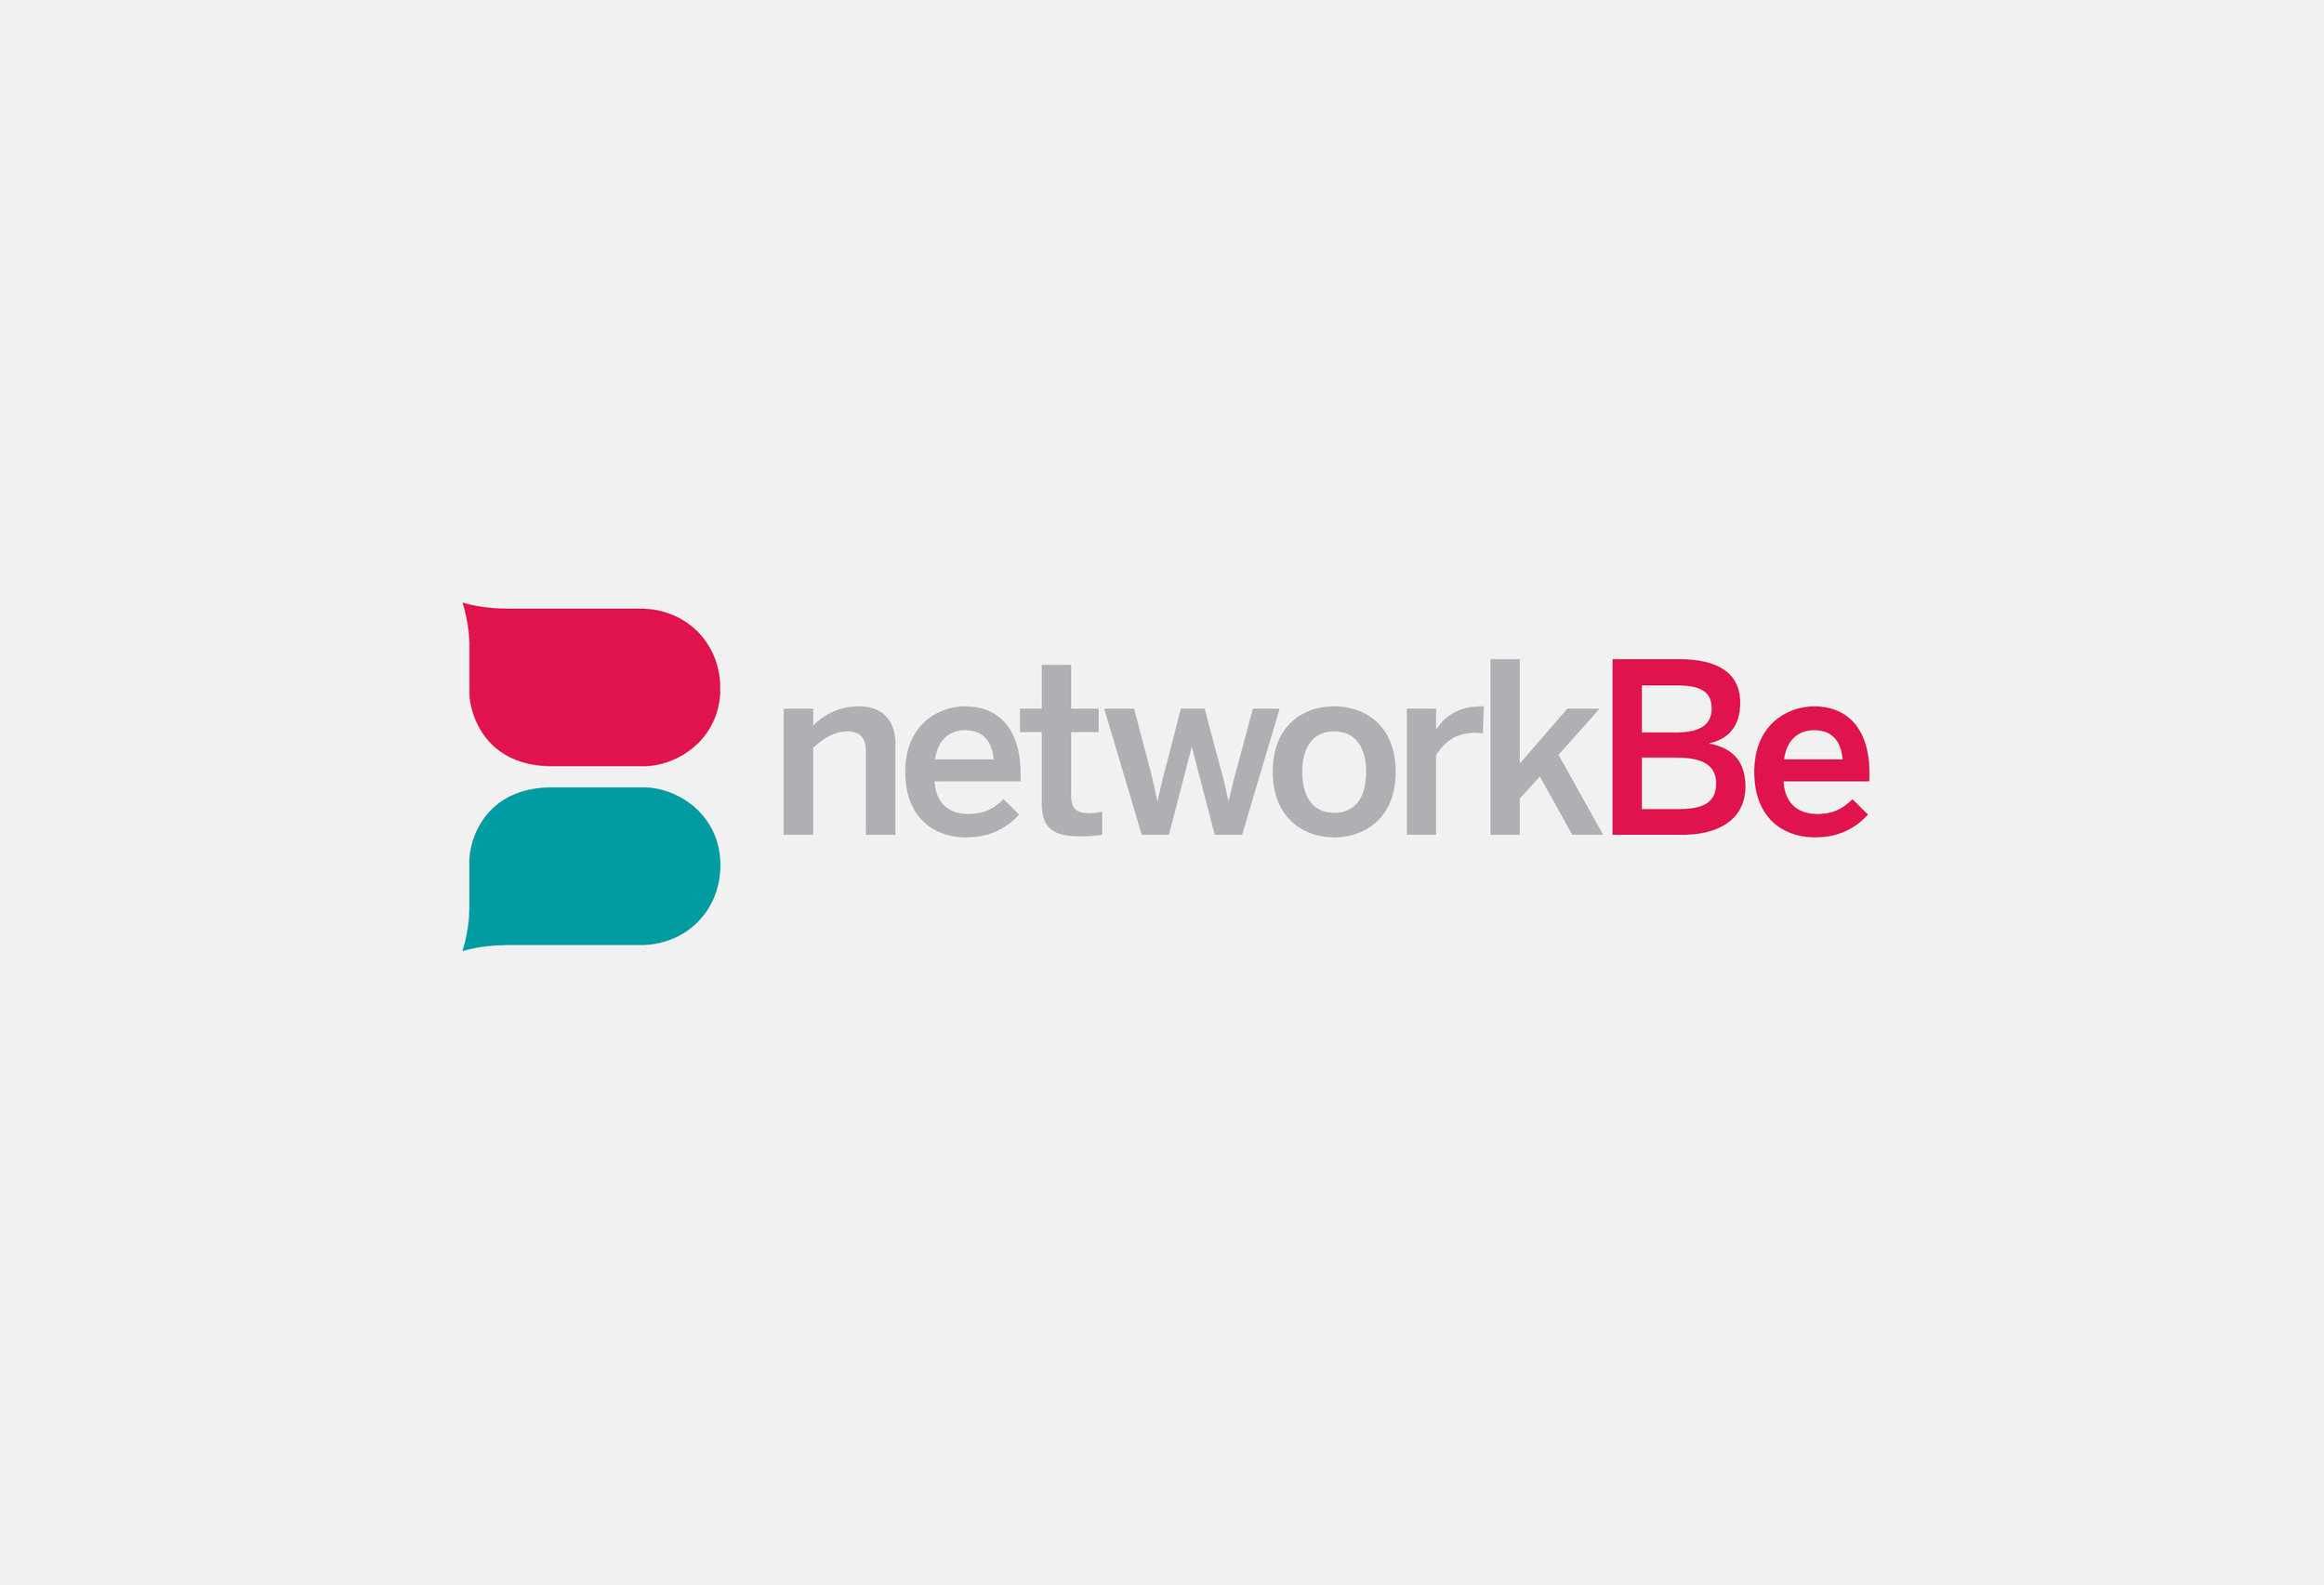 Network Be images of Project2.jpg